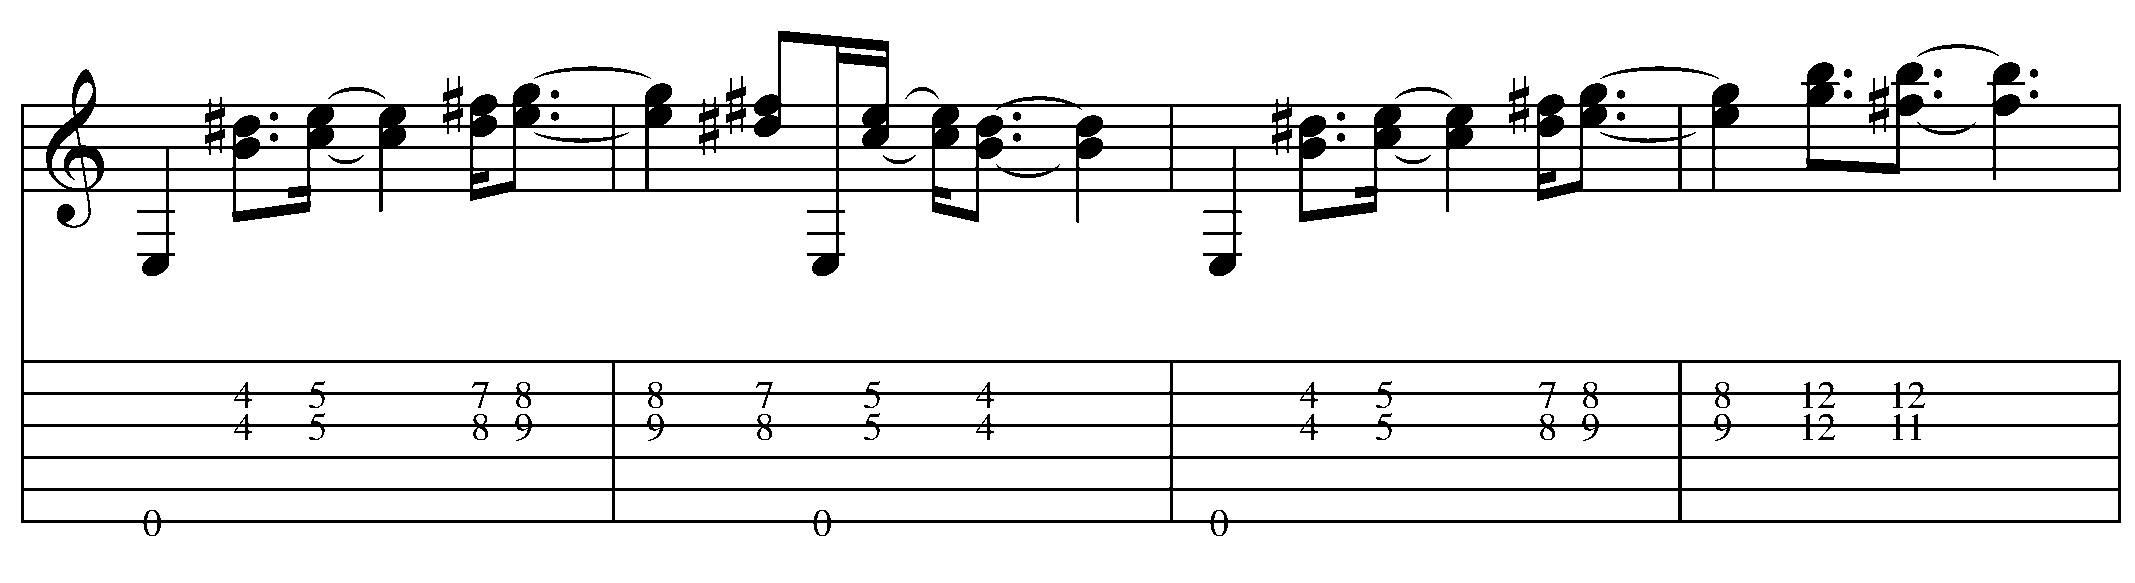 Improvisation lesson guitarchitecture favored curry or spicing up chord scales and triads part 2 hexwebz Choice Image